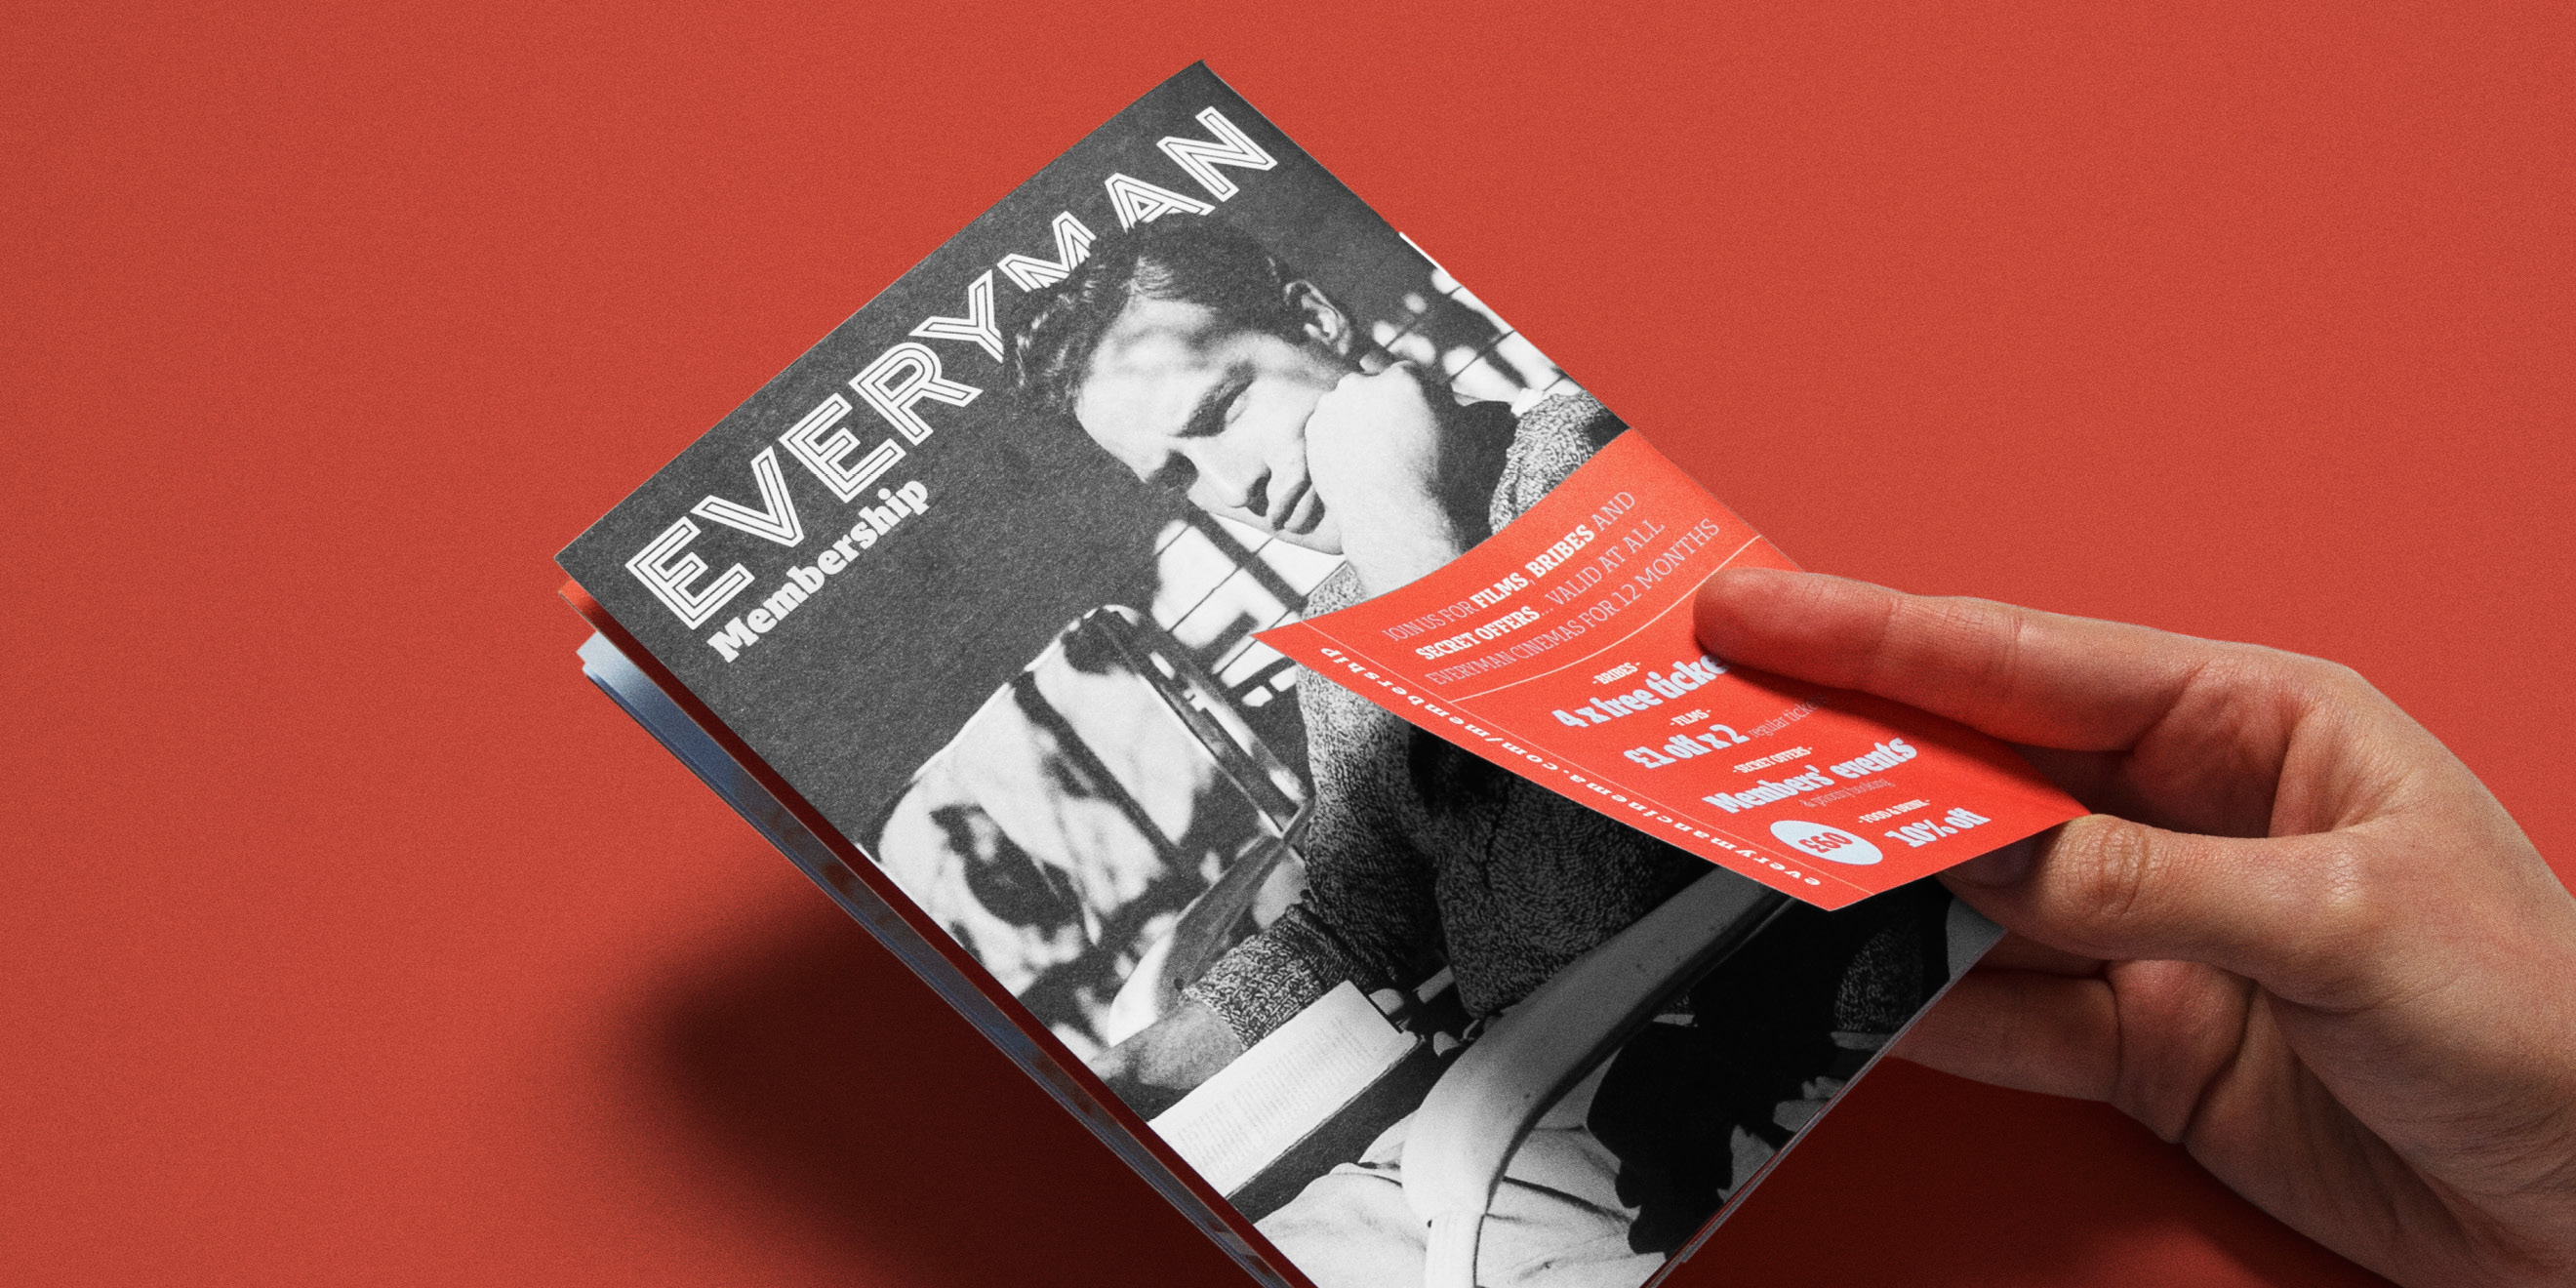 Everyman Cinemas Everyman Magazine cover overlay detail photography by Human After All